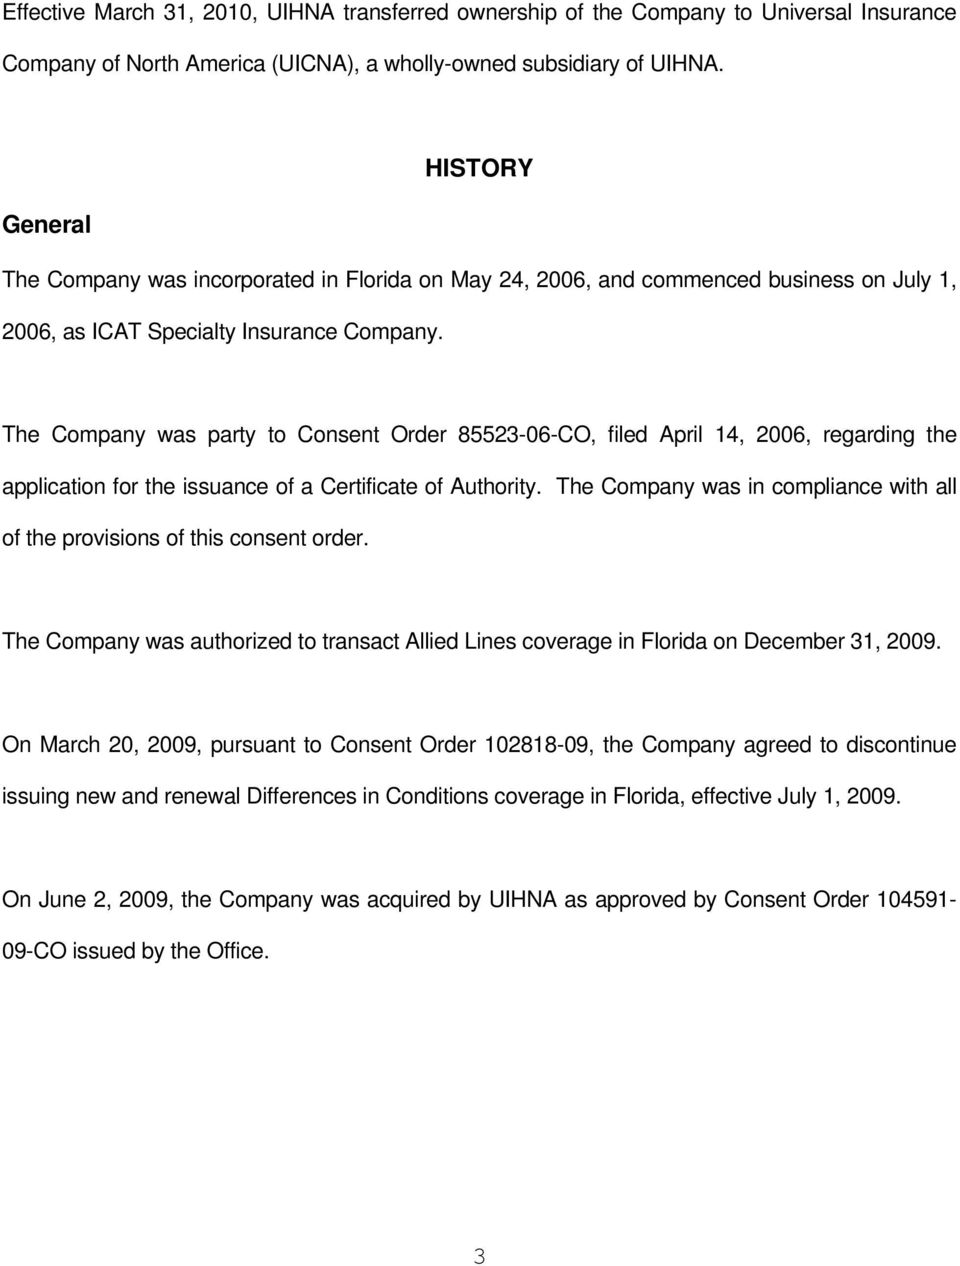 The Company was party to Consent Order 85523-06-CO, filed April 14, 2006, regarding the application for the issuance of a Certificate of Authority.